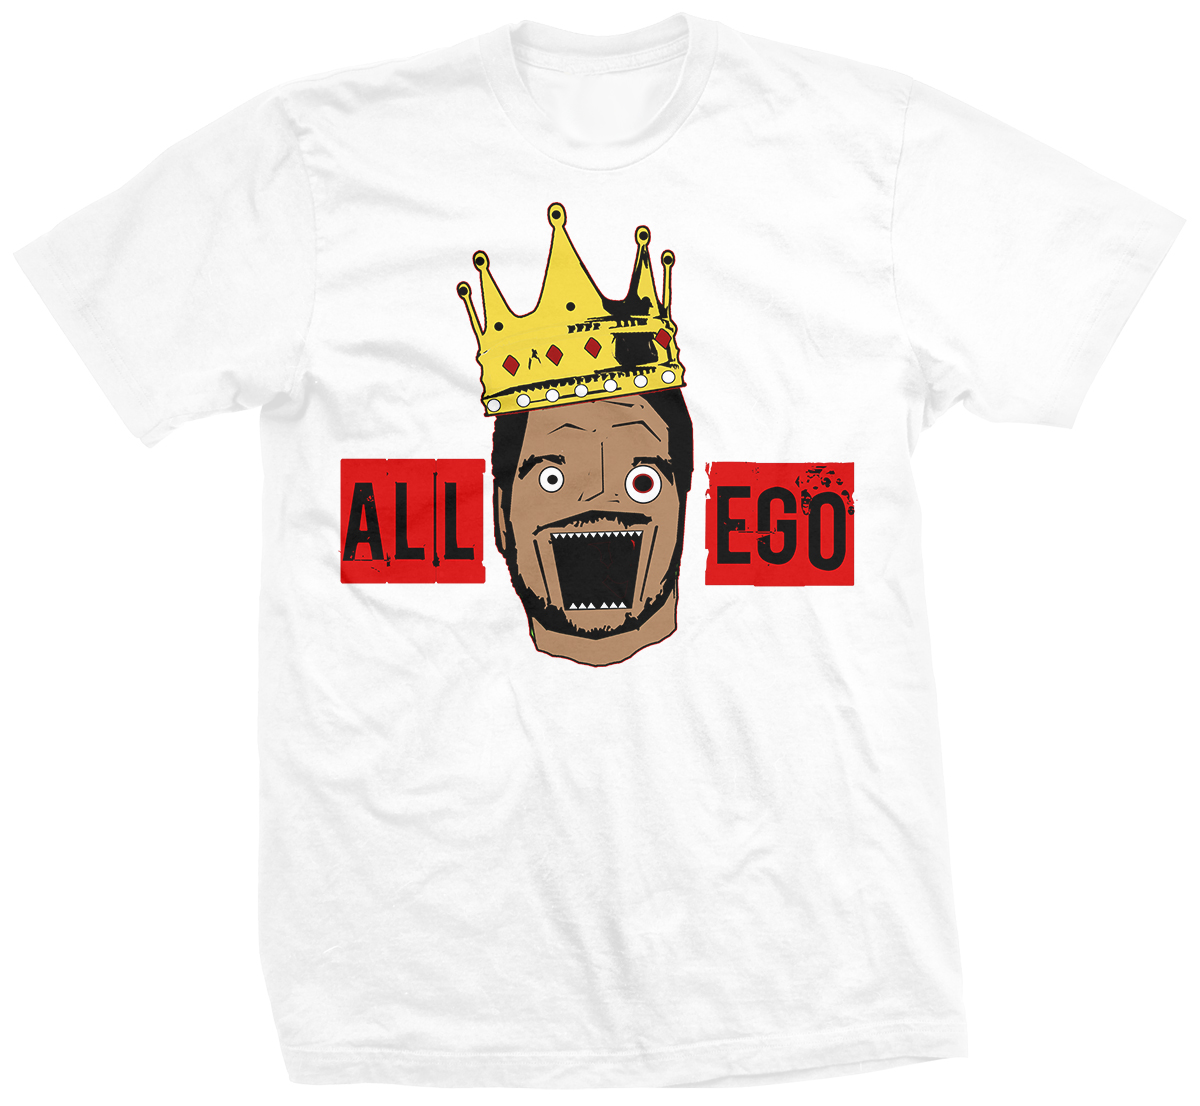 The Screaming Ego T-shirt